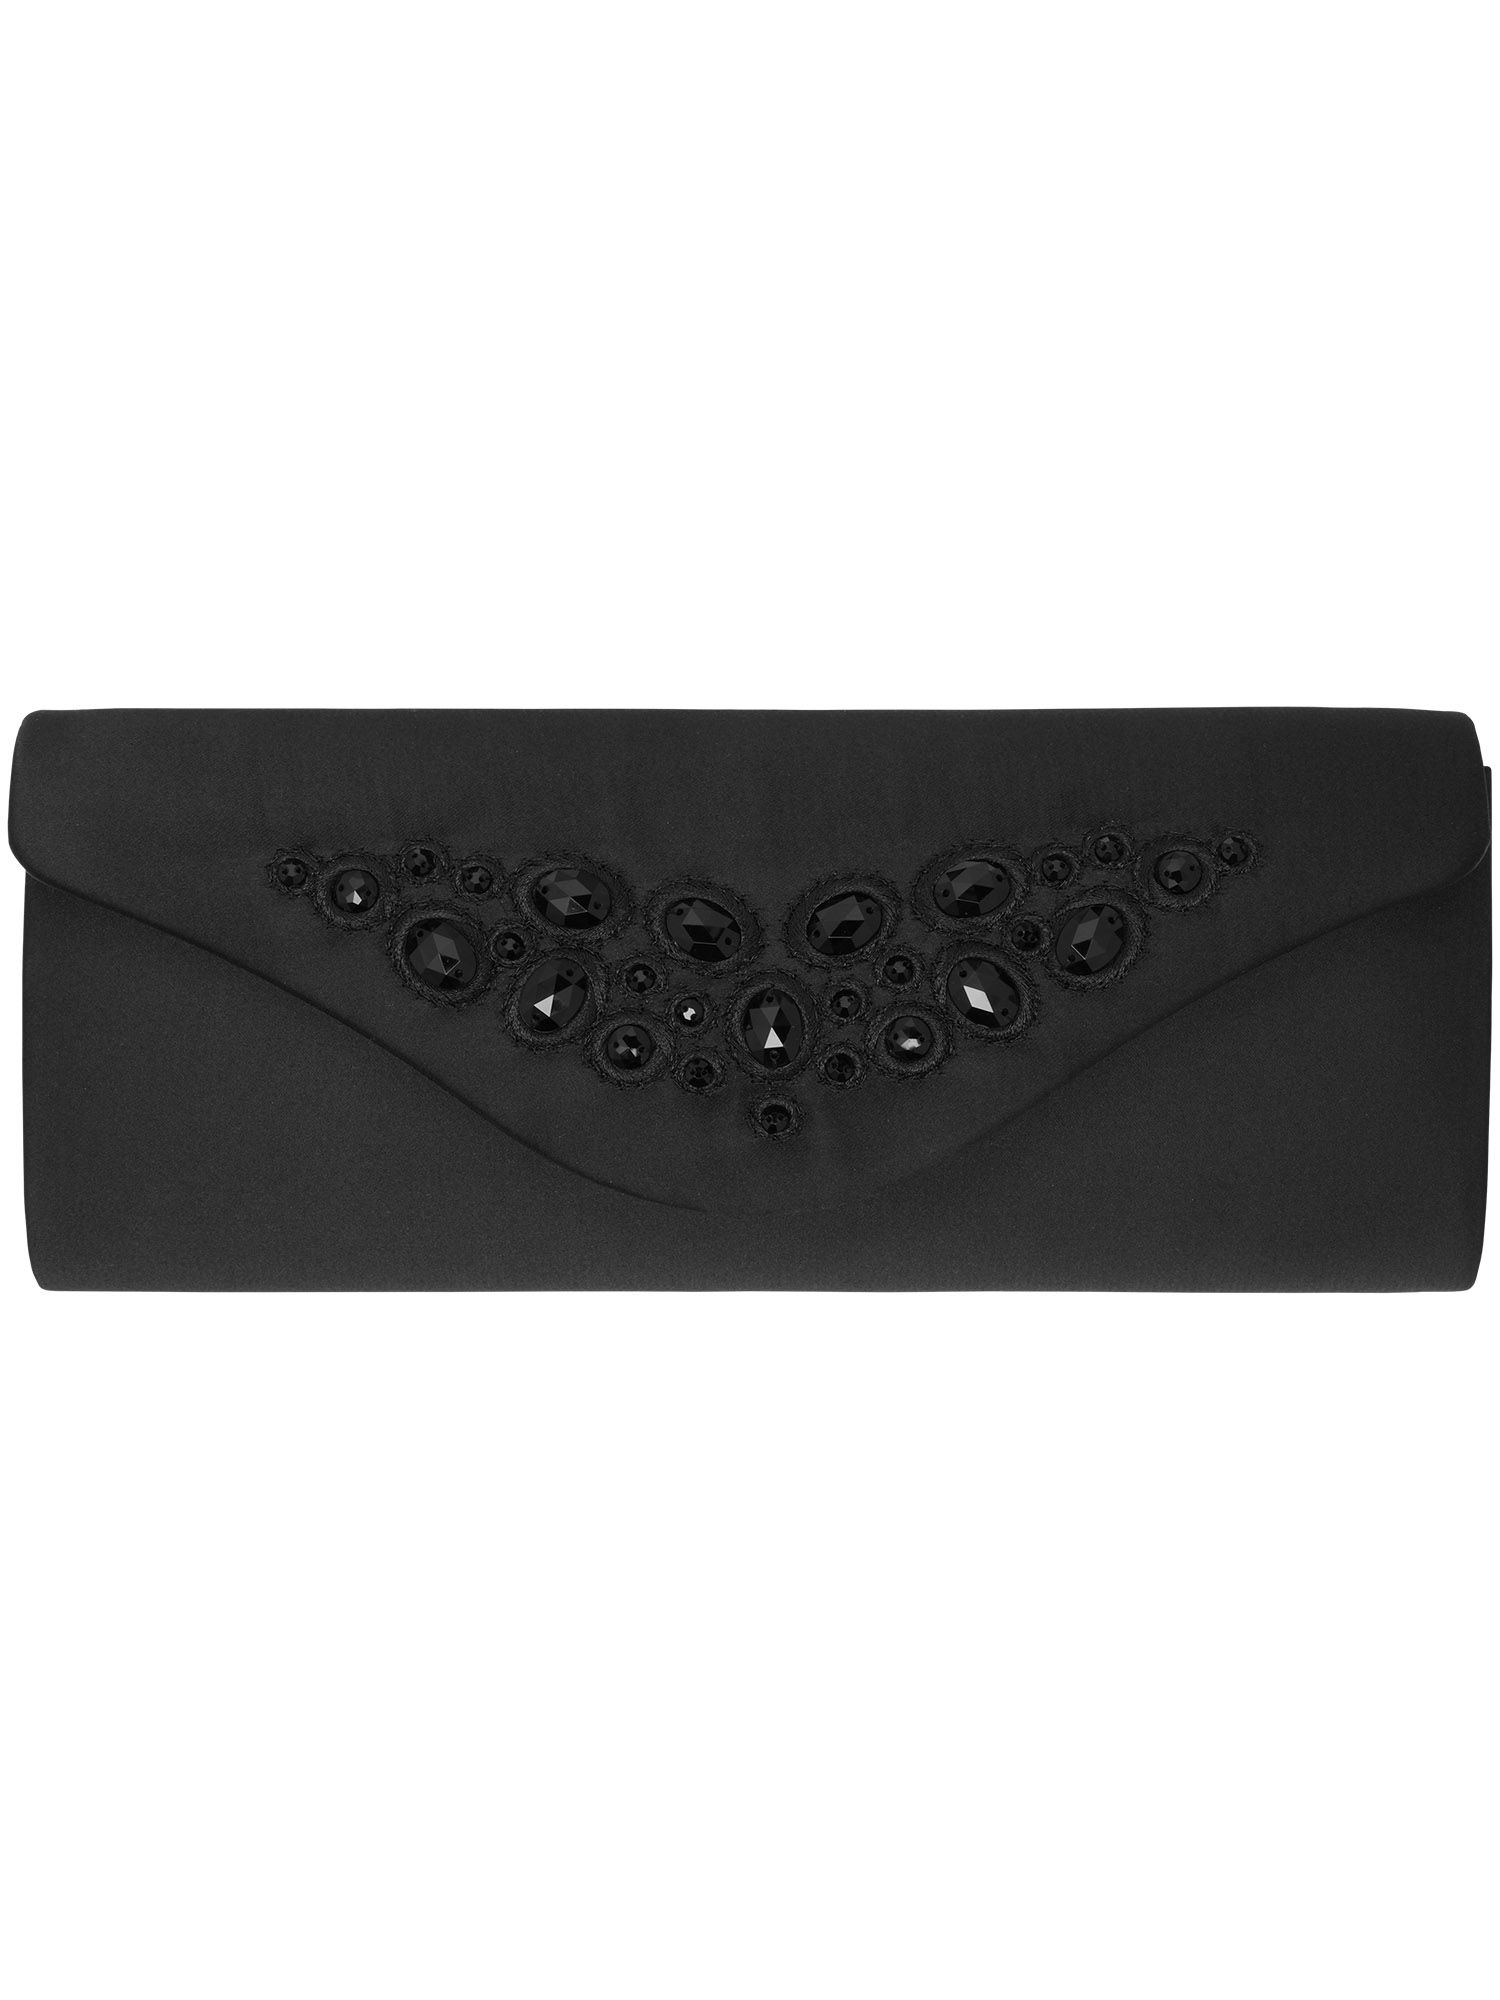 Cara jewelled clutch bag